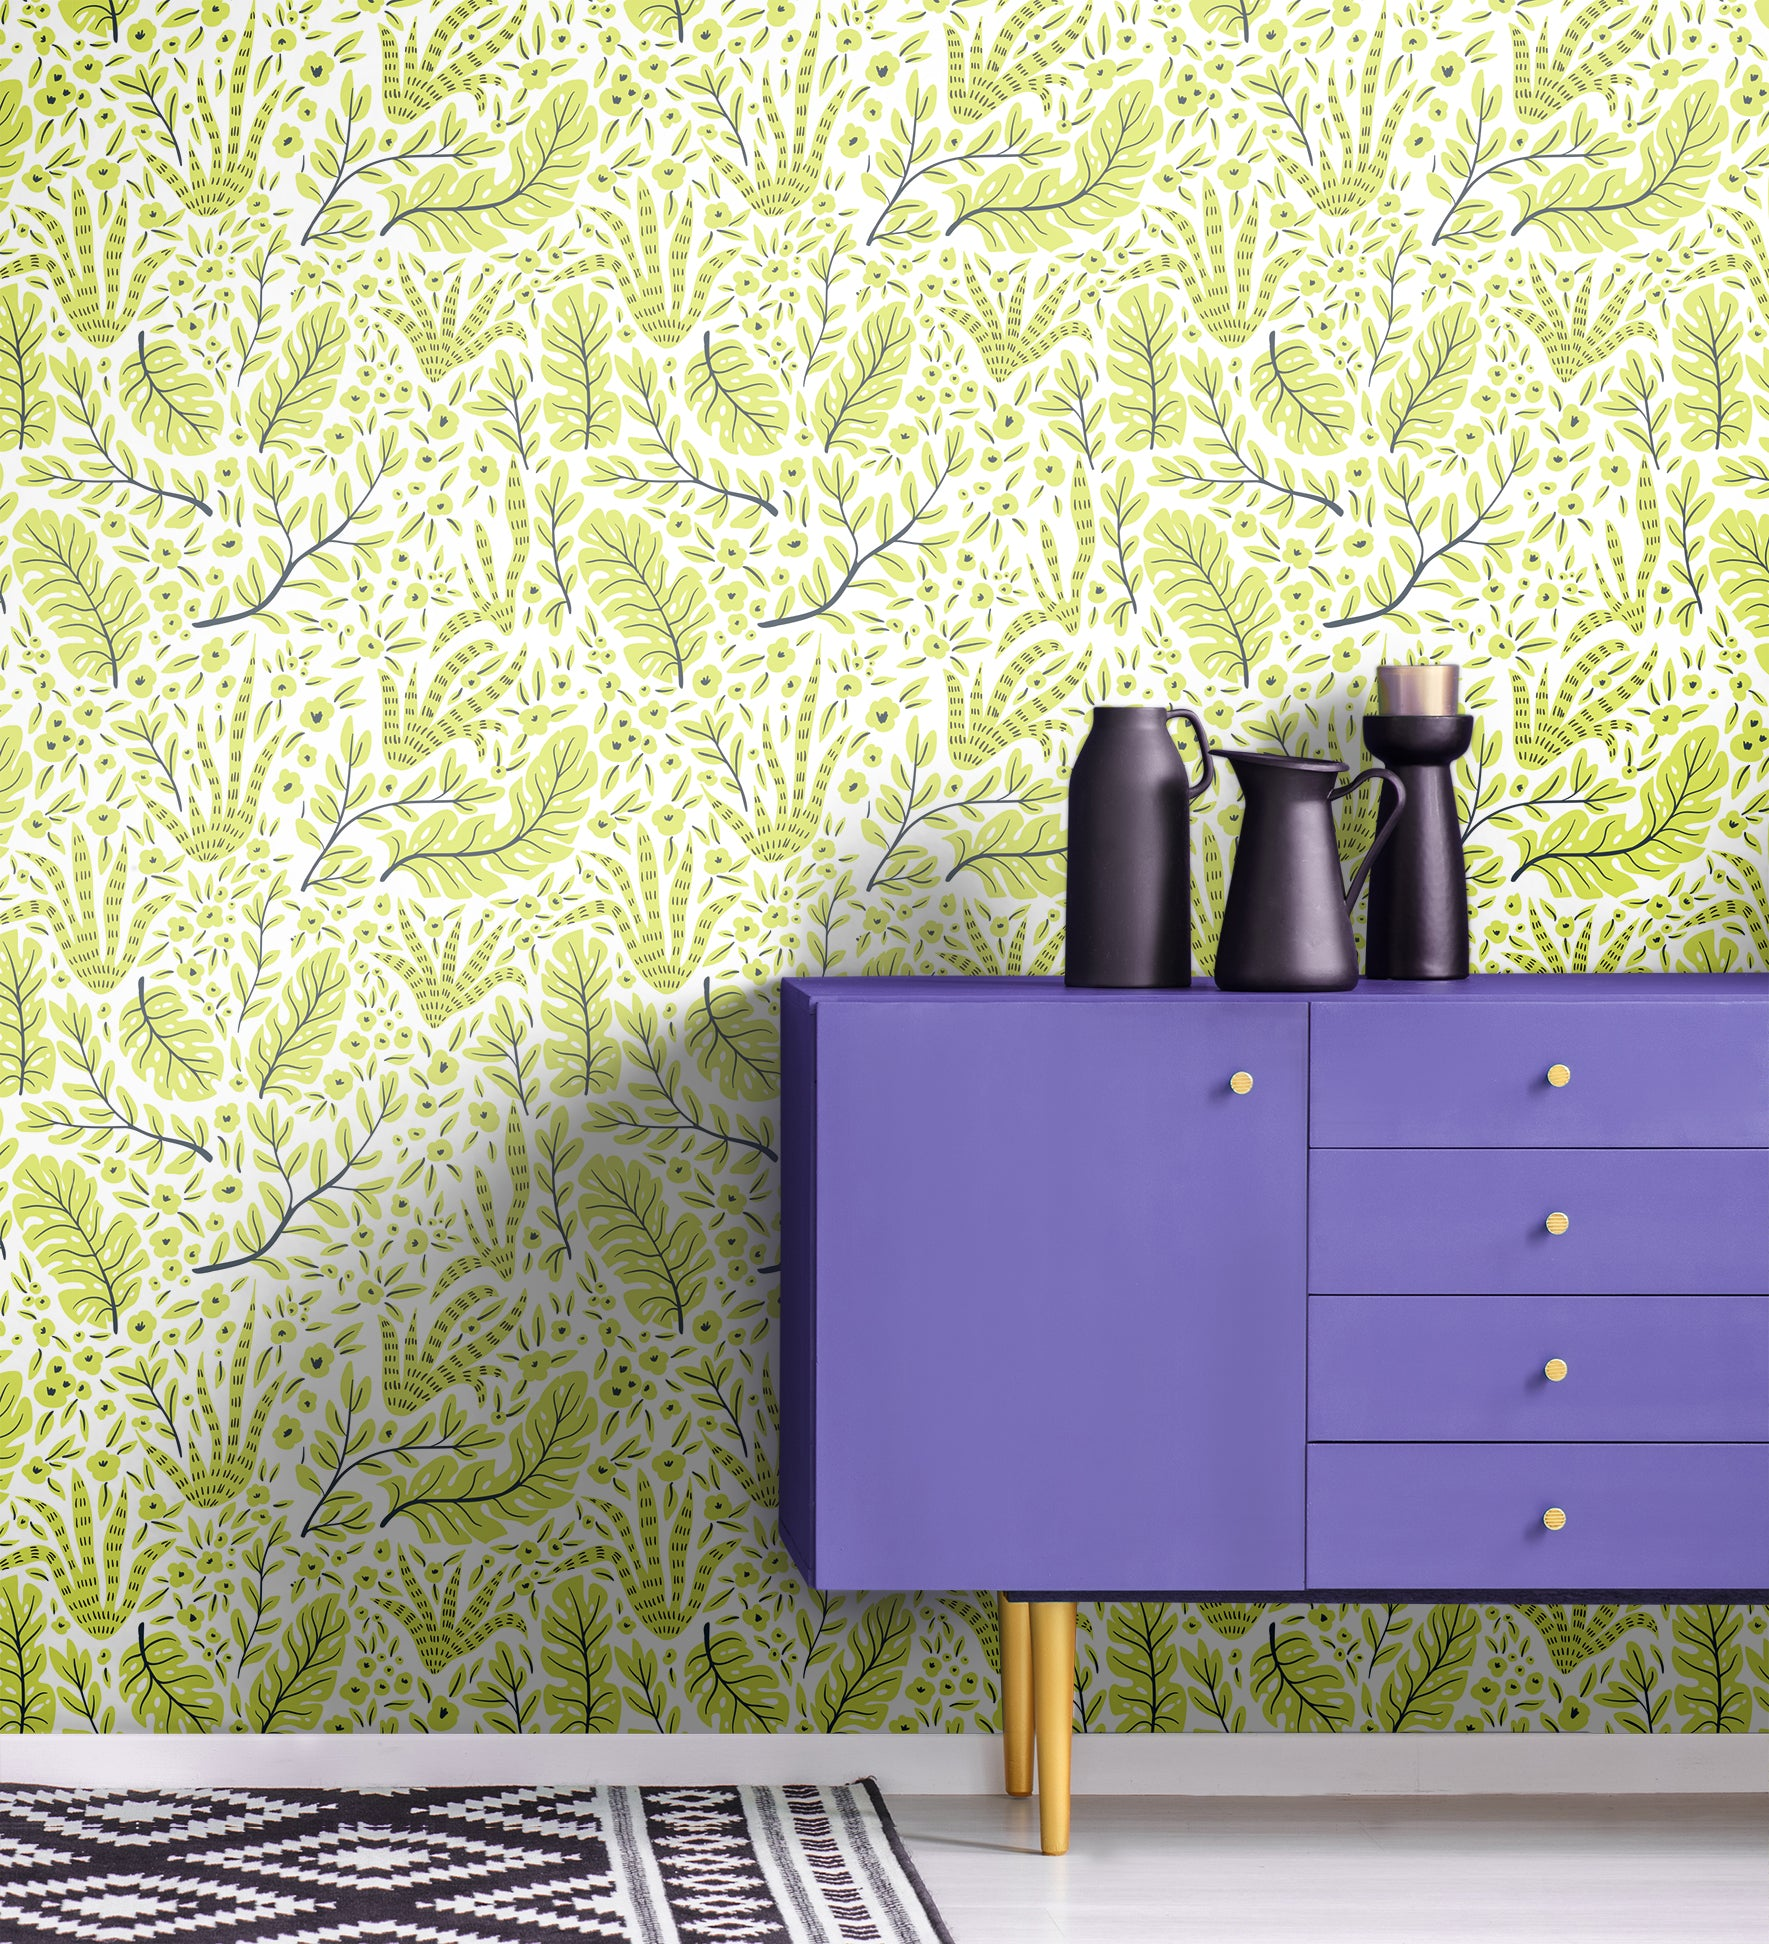 Bright, vivid tropical plant removable wallpaper behind purple credenza and kilim rug